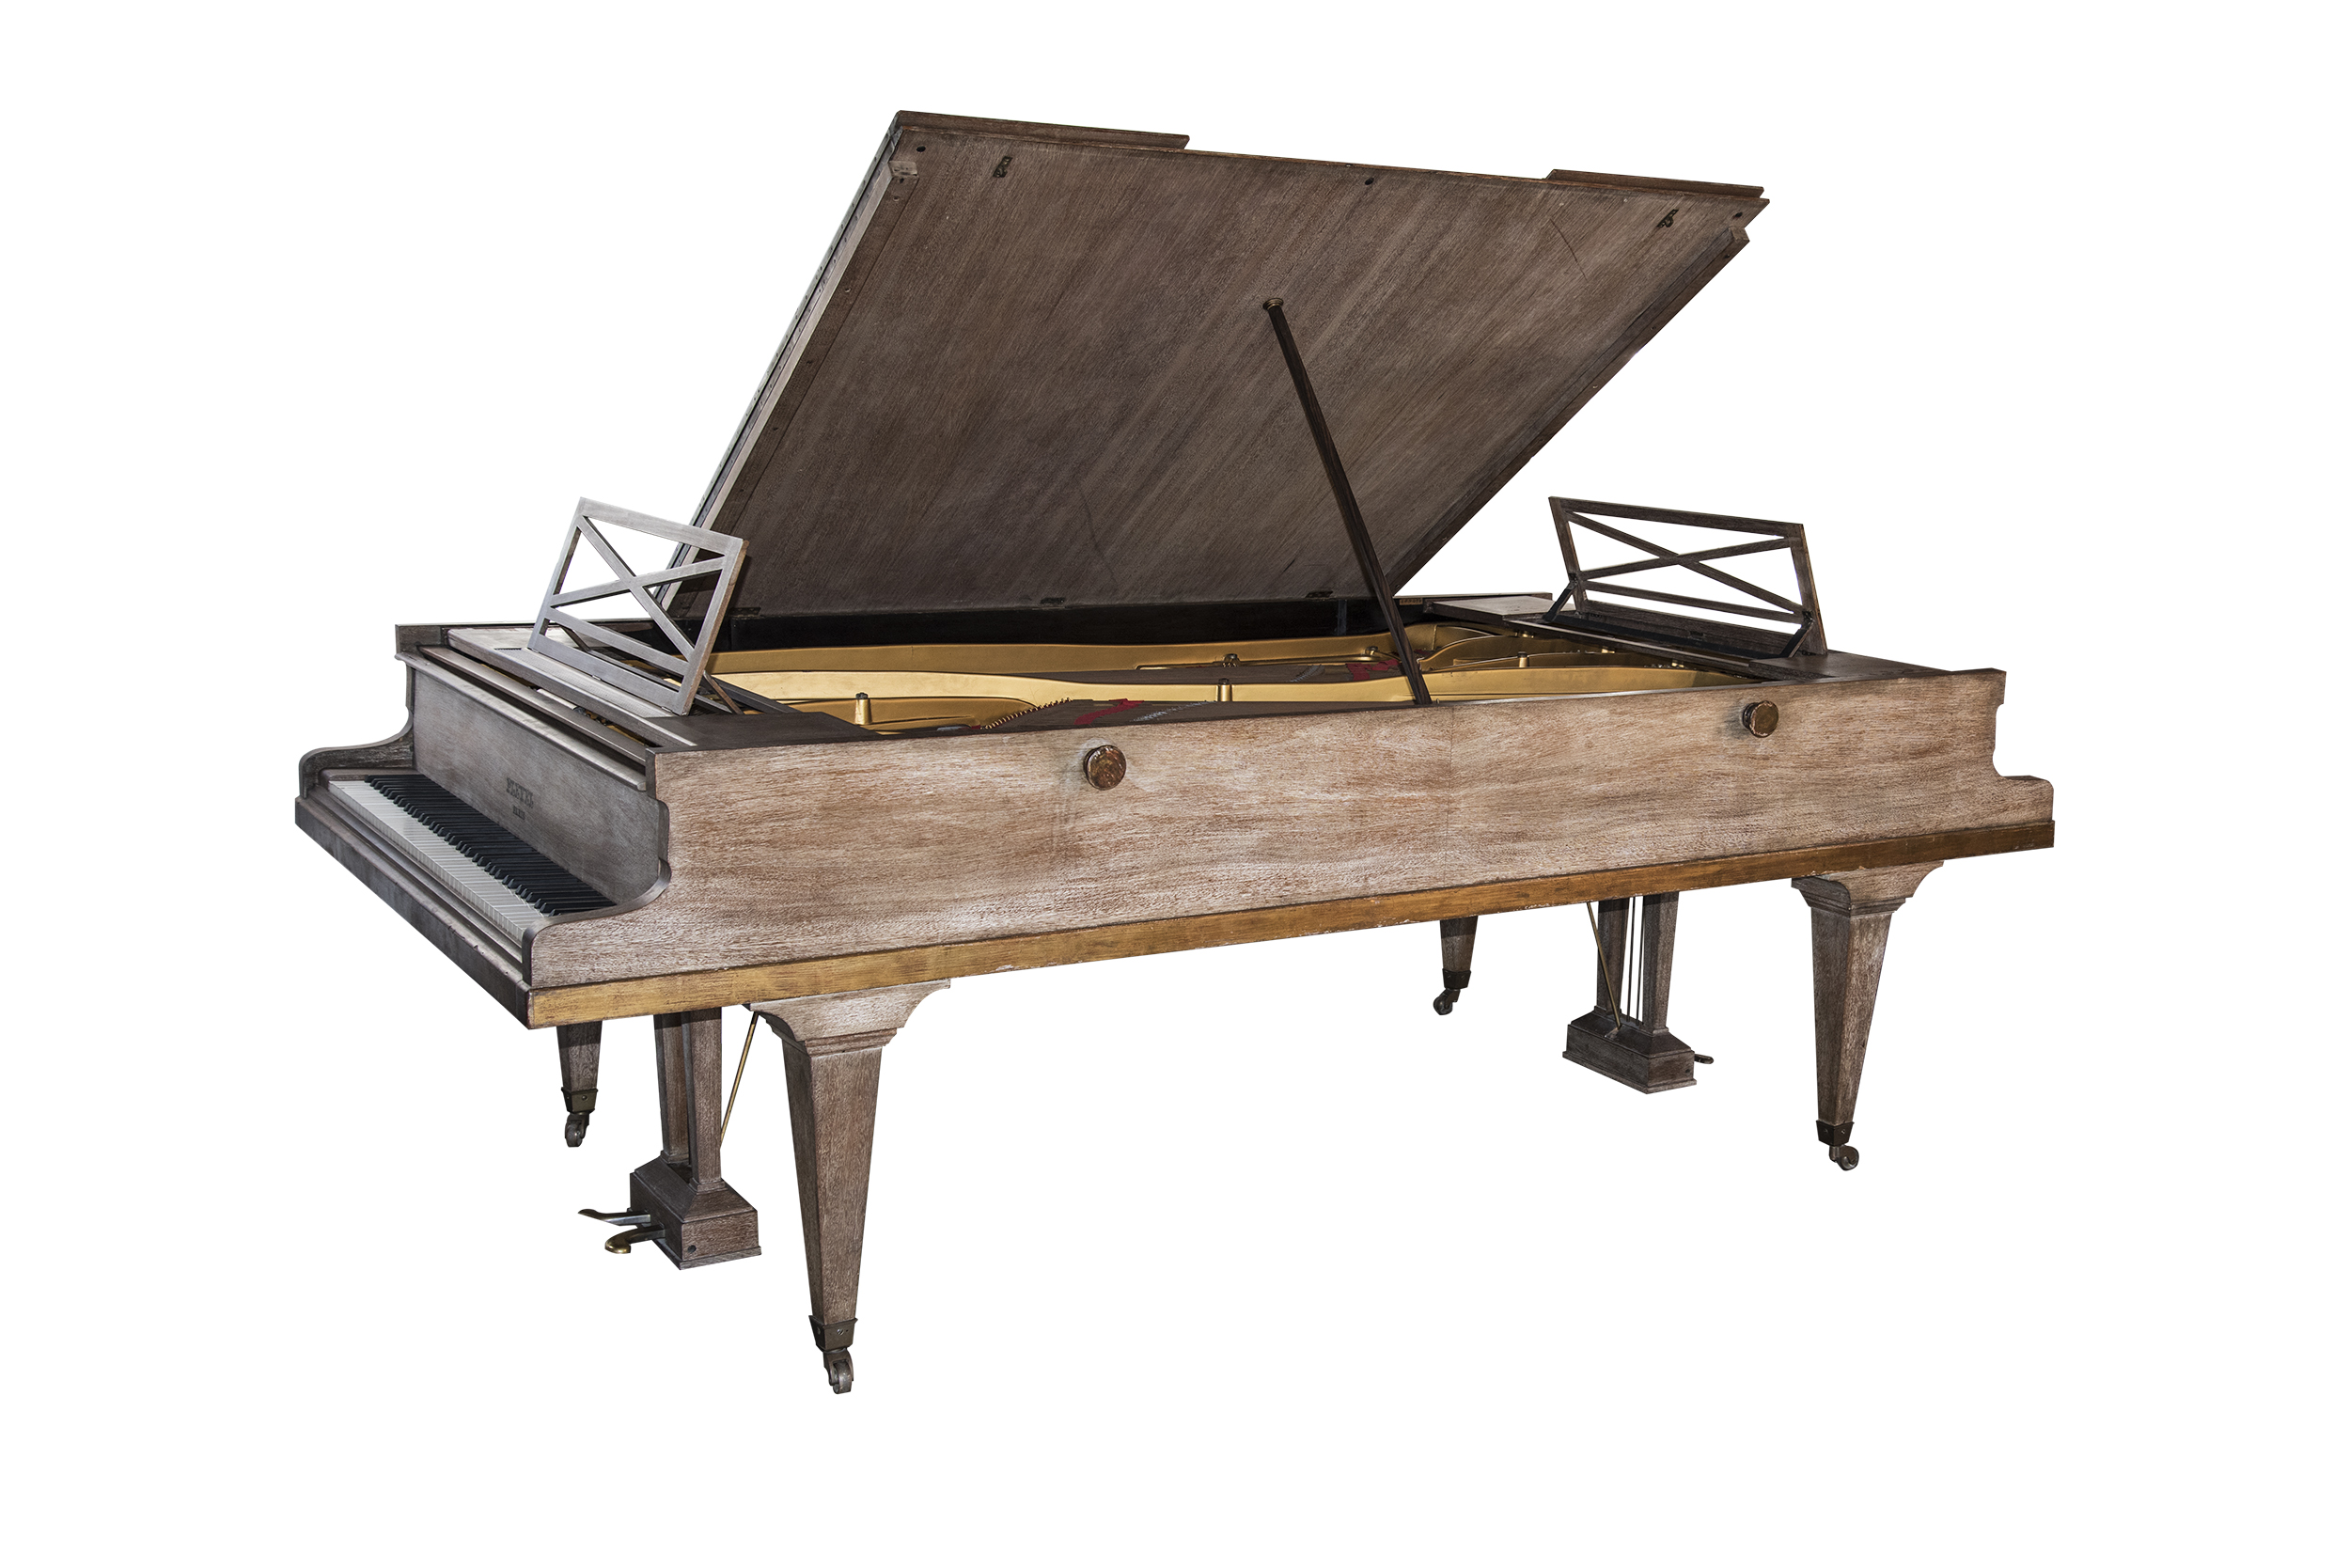 Pleyel Double Grand Piano, André Malraux